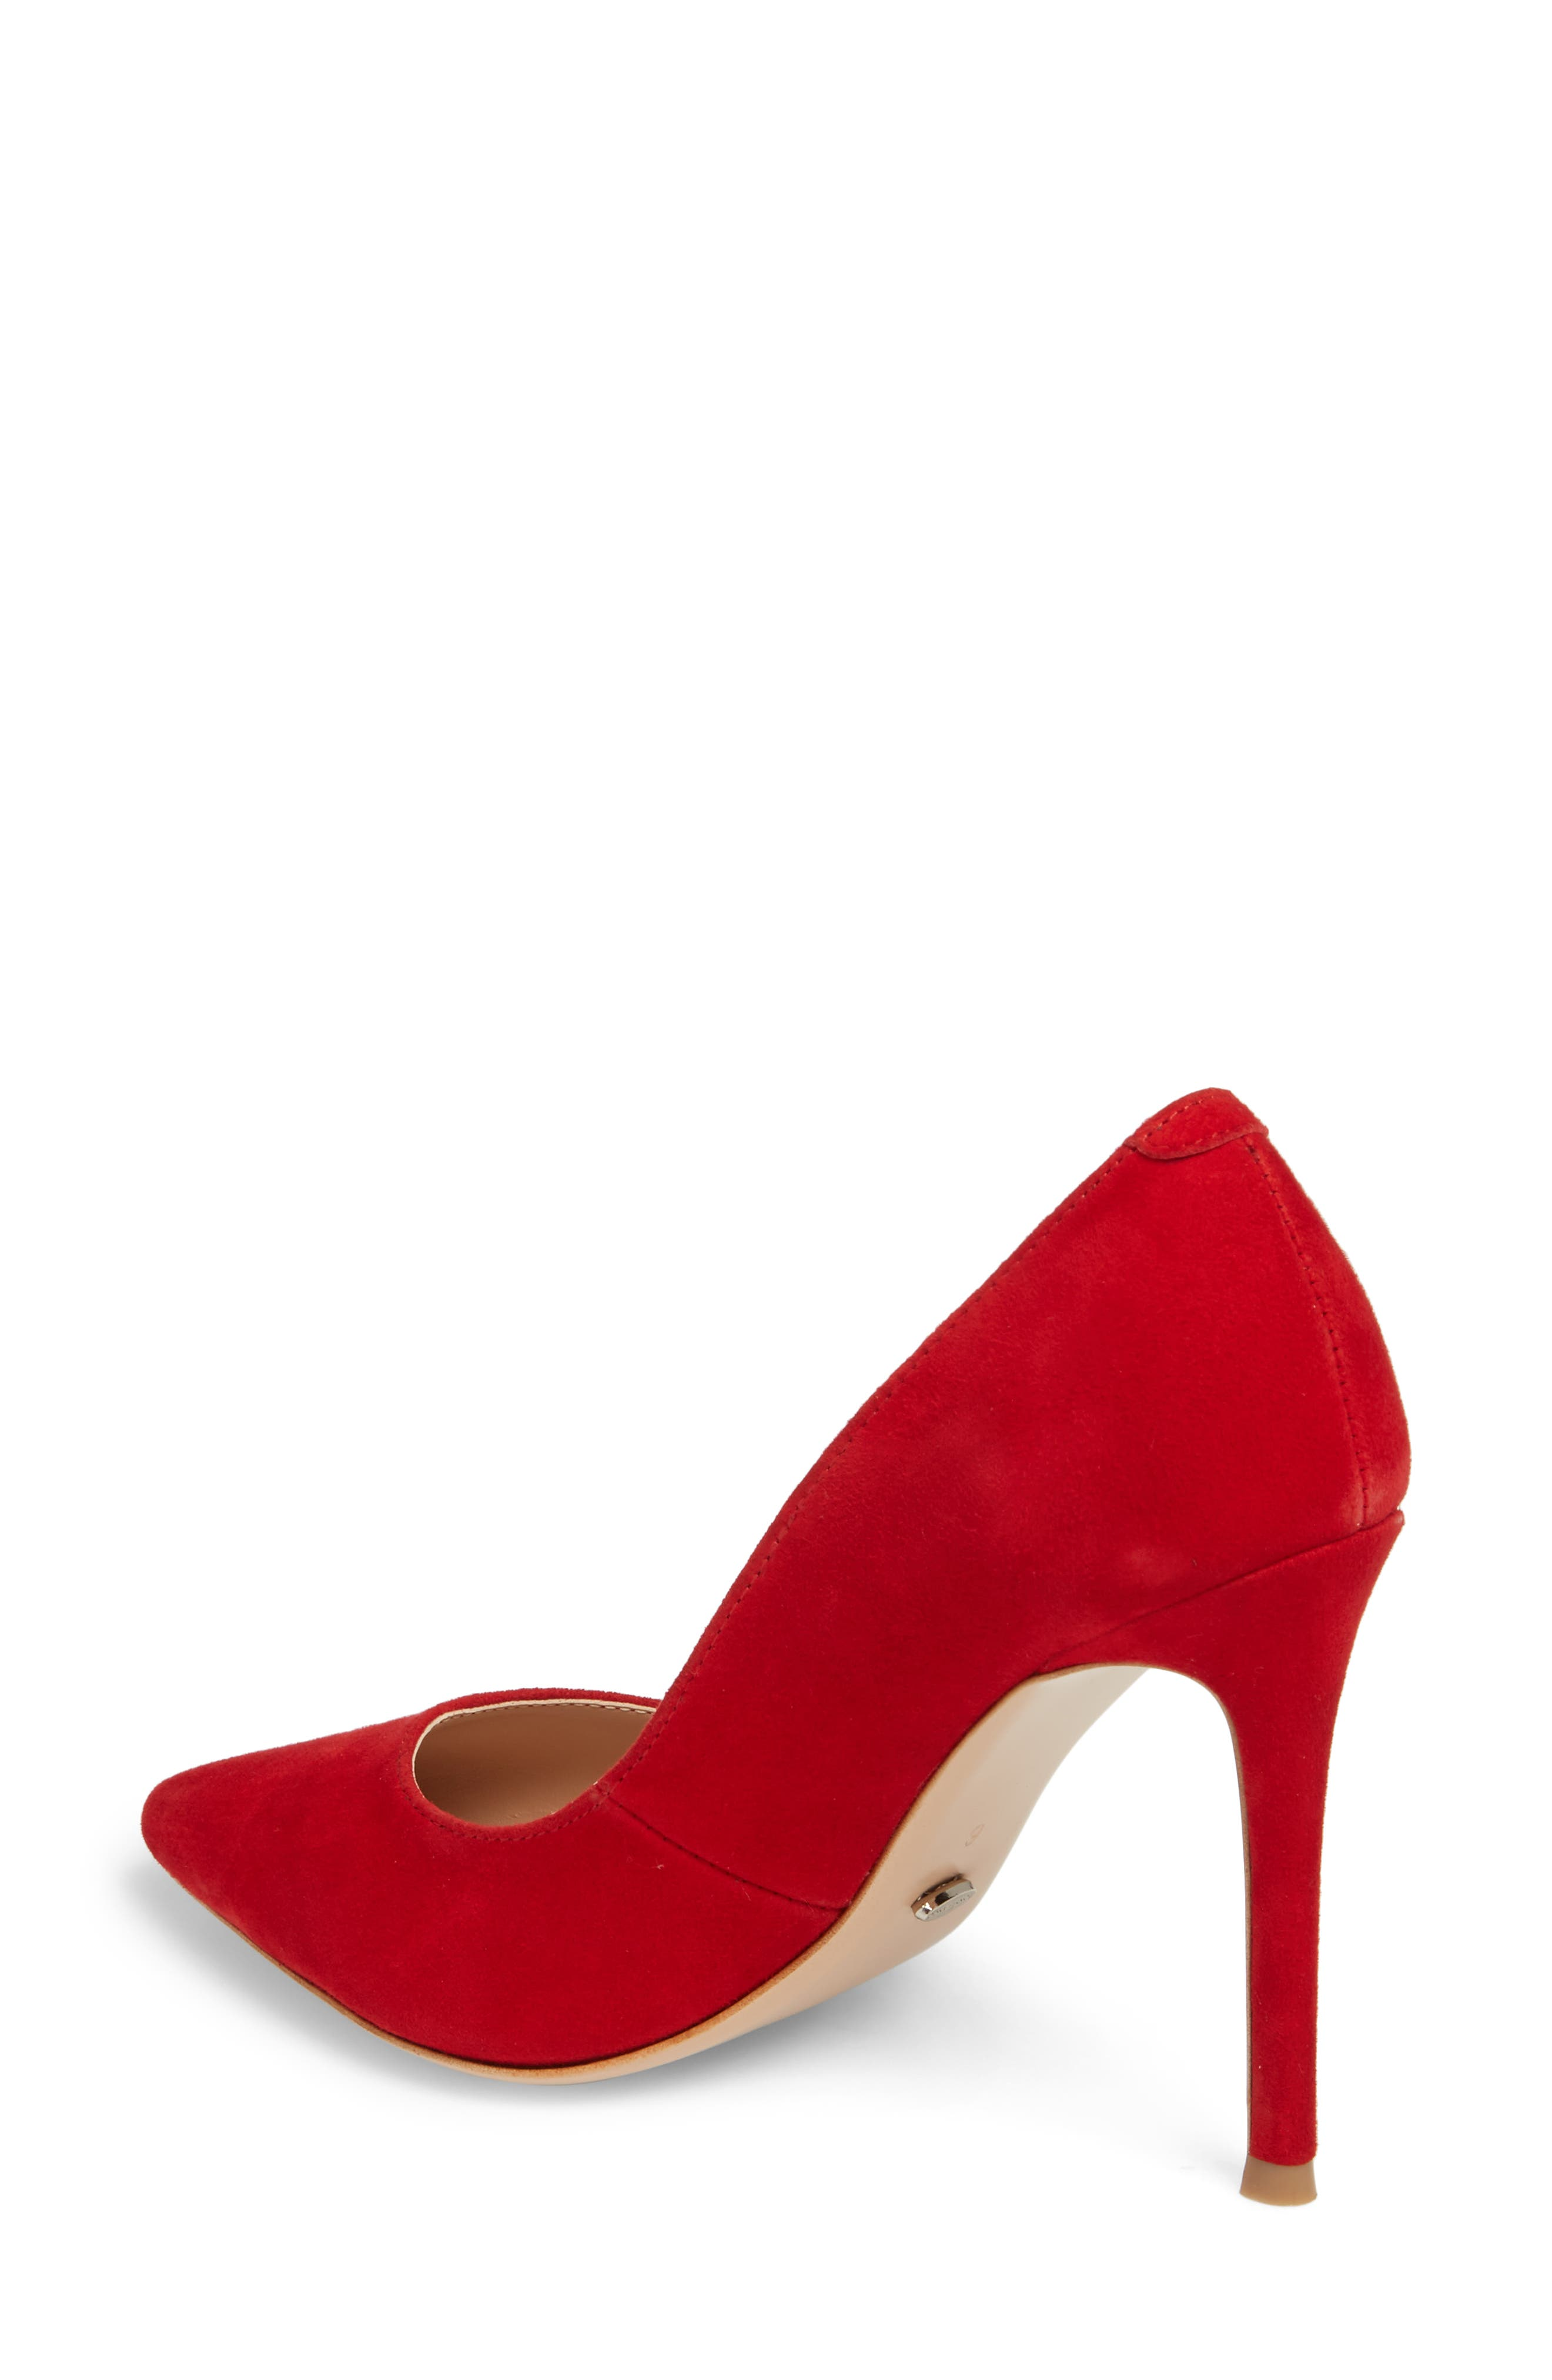 Lotus Pointy Toe Pump,                             Alternate thumbnail 2, color,                             FIRE SUEDE